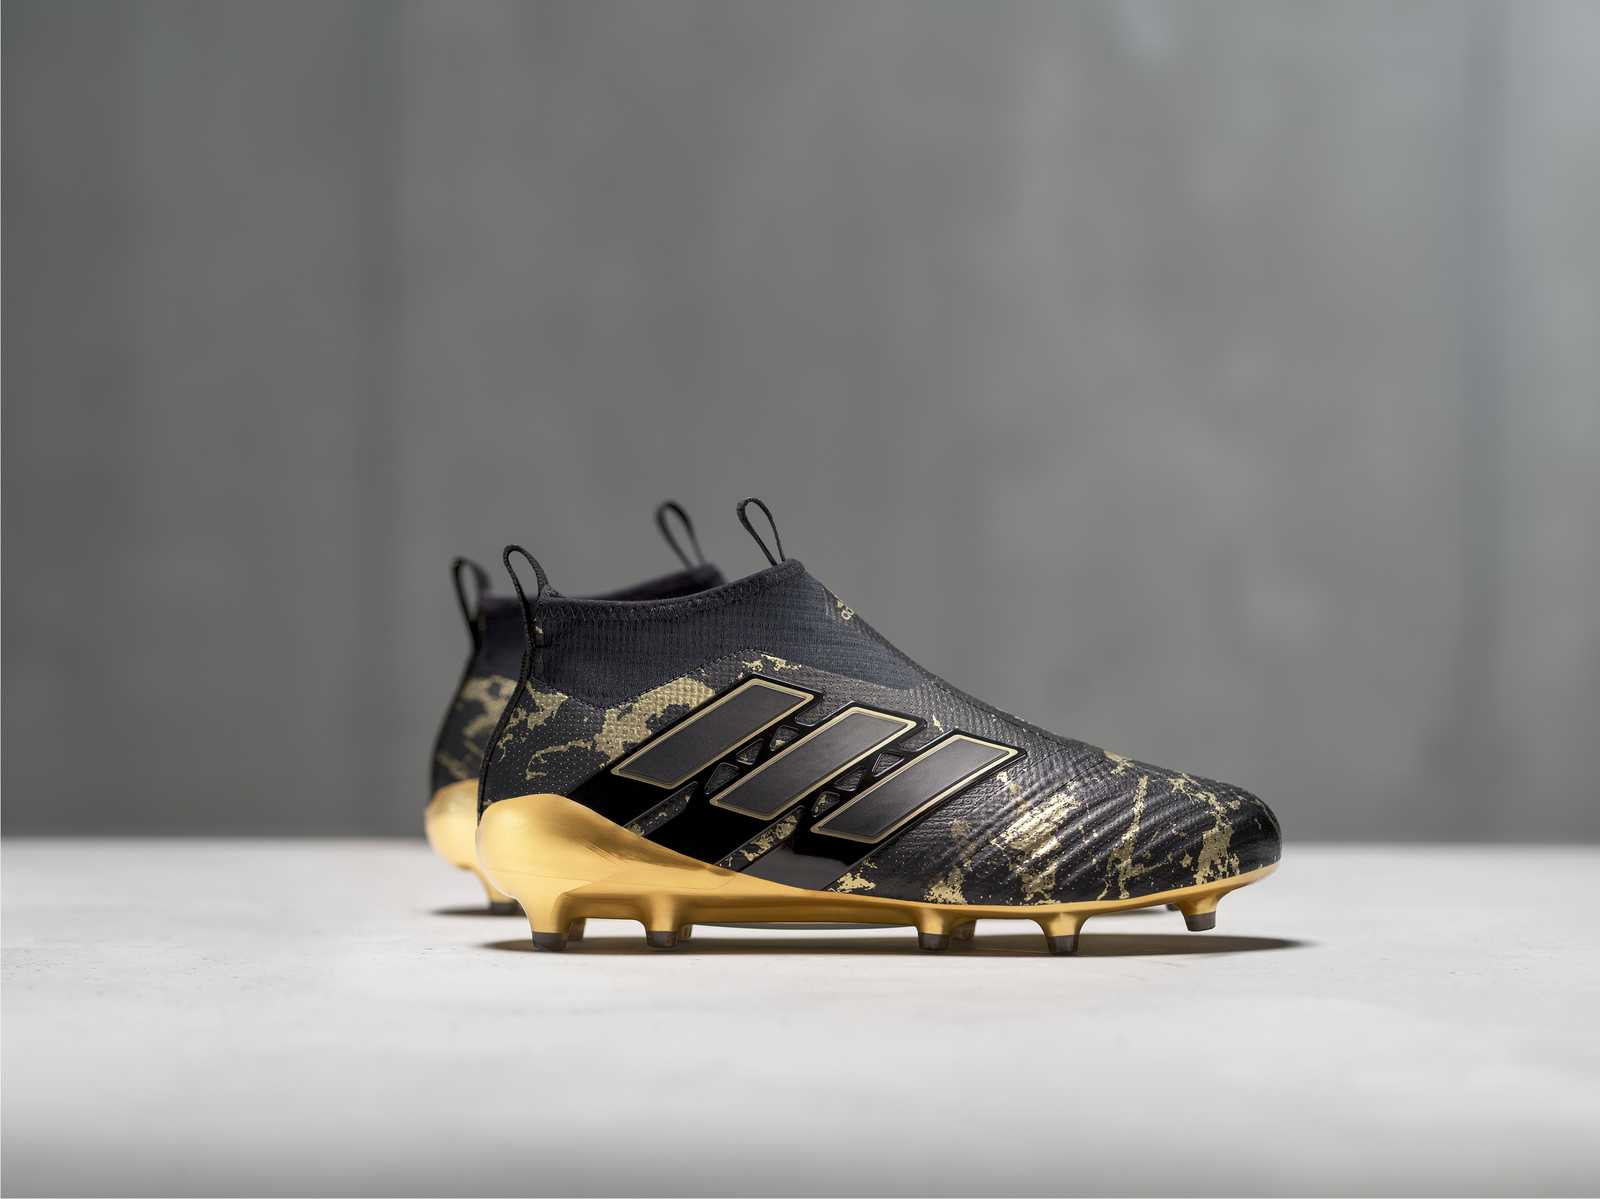 bfd925992 Clearance Adidas Ace 17+ PureControl Paul Pogba Signature Boots Released